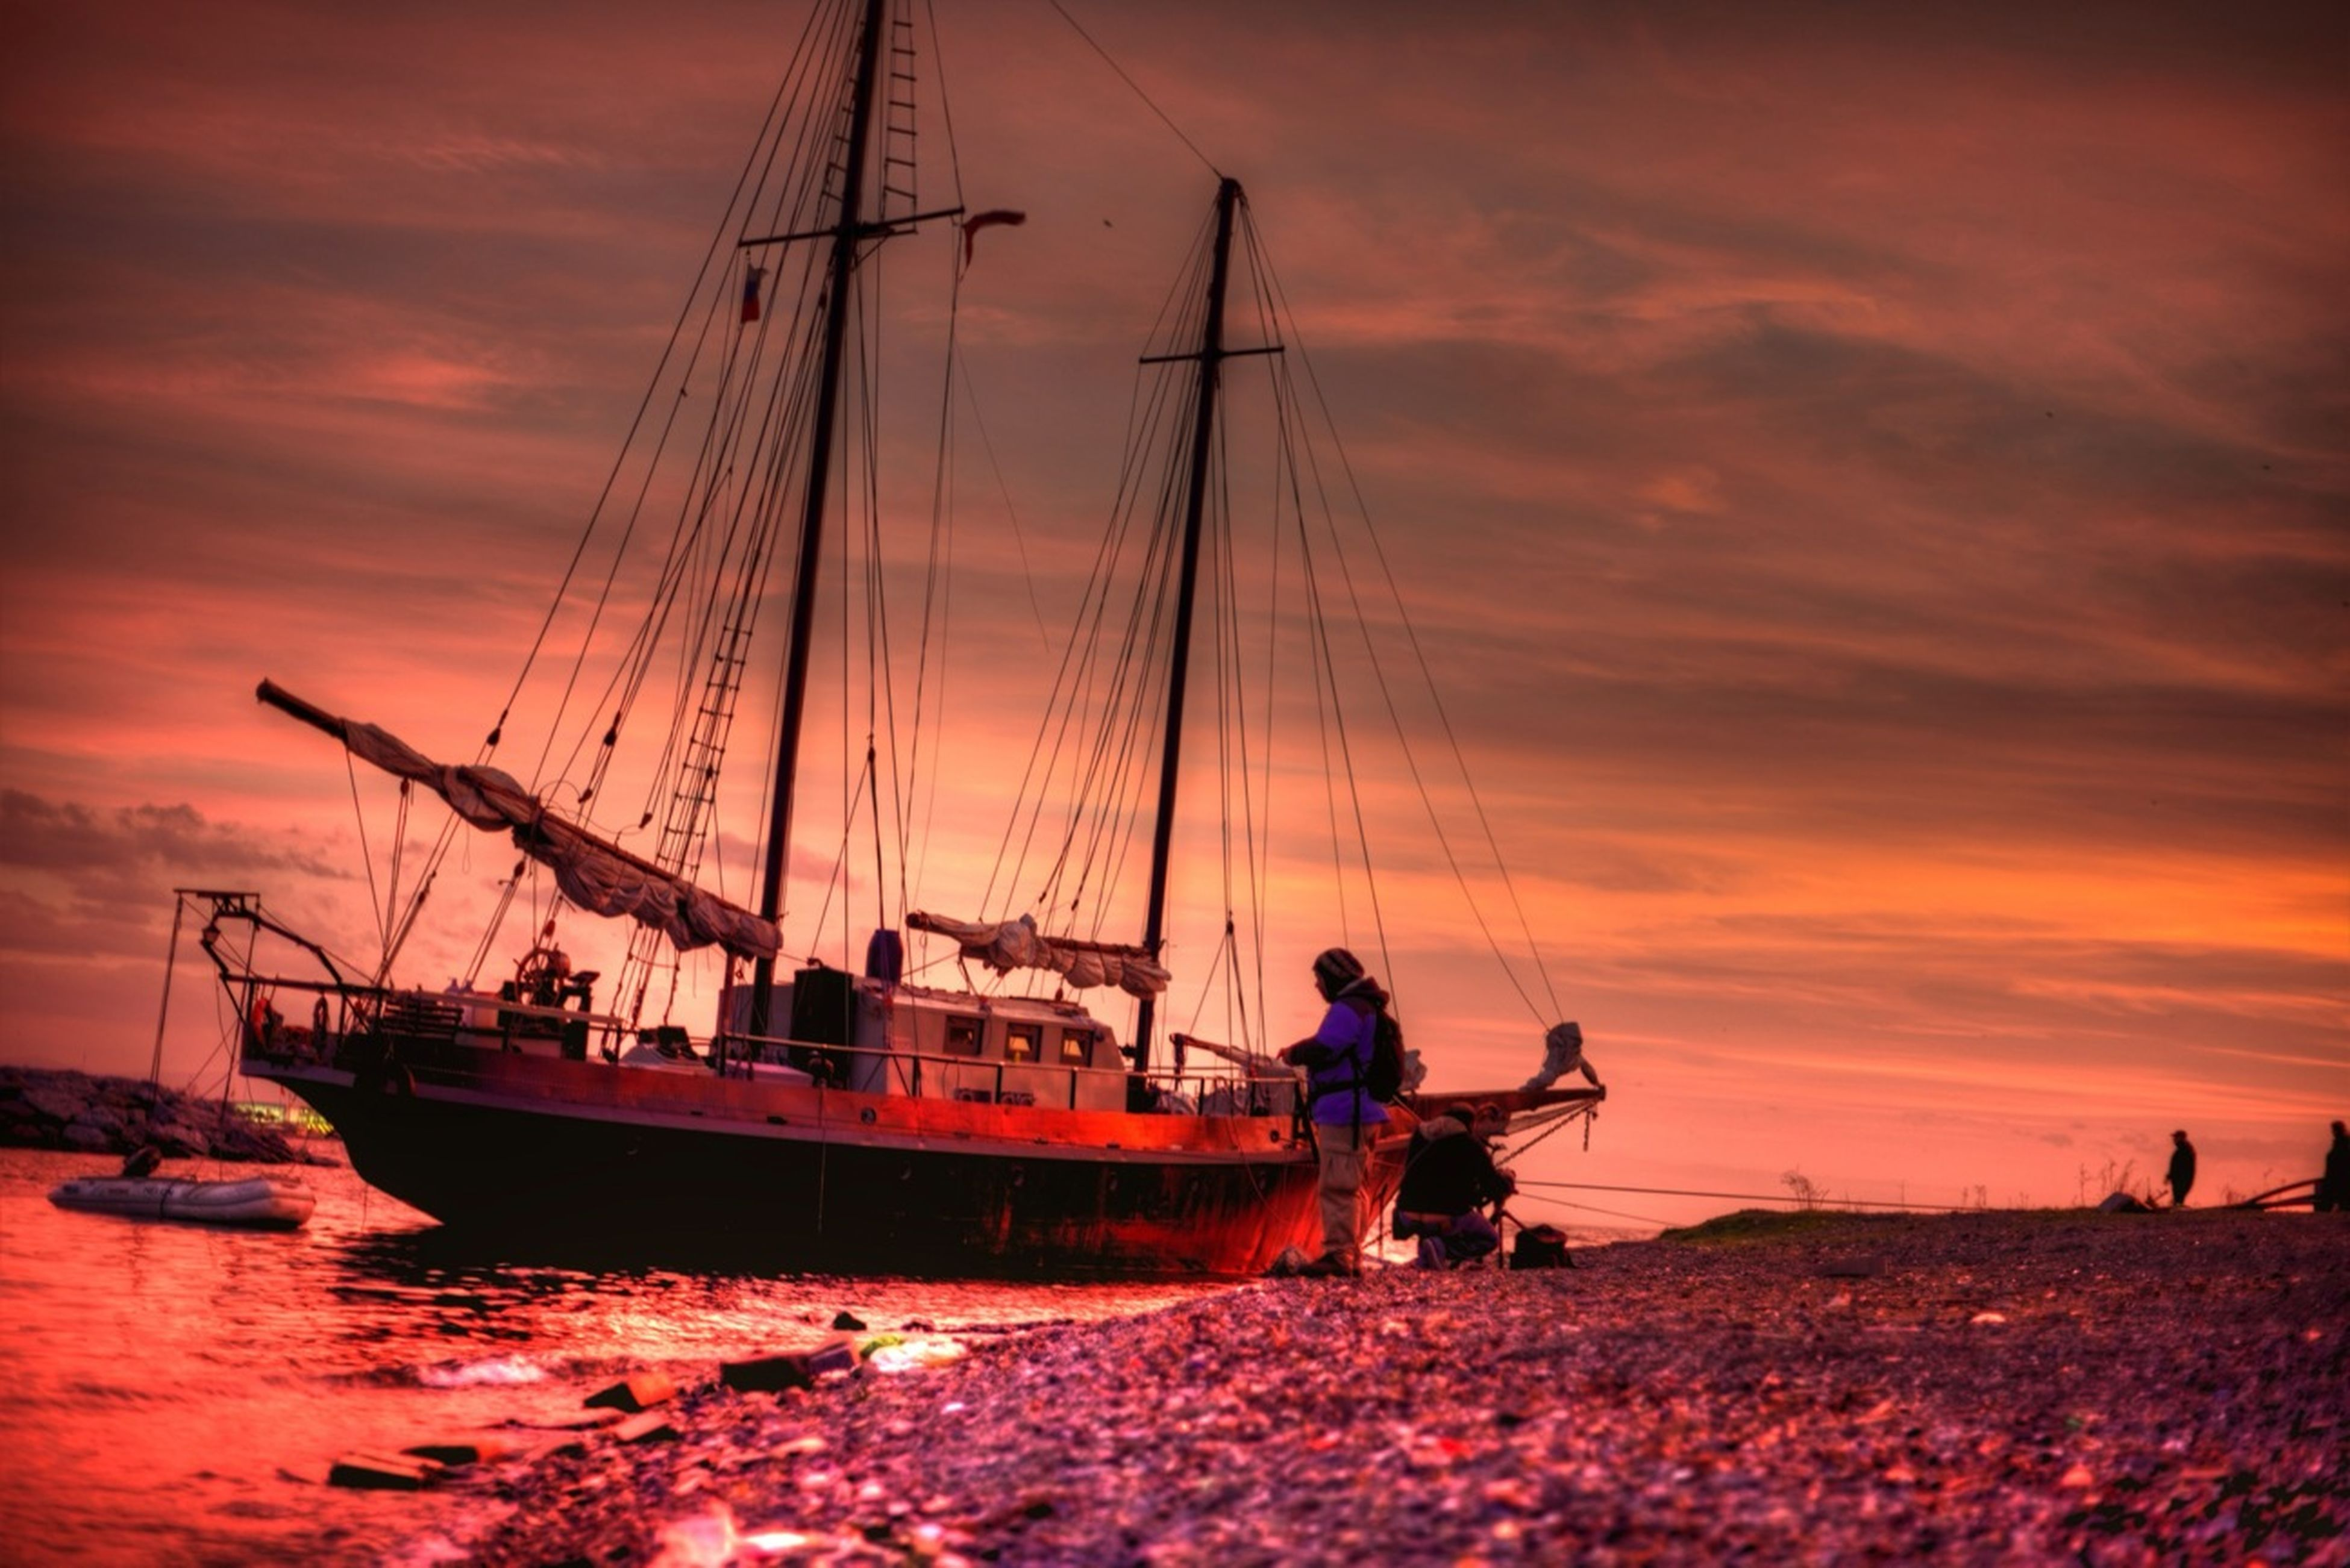 nautical vessel, transportation, boat, mode of transport, water, sunset, sky, sea, men, leisure activity, silhouette, mast, cloud - sky, lifestyles, scenics, orange color, moored, travel